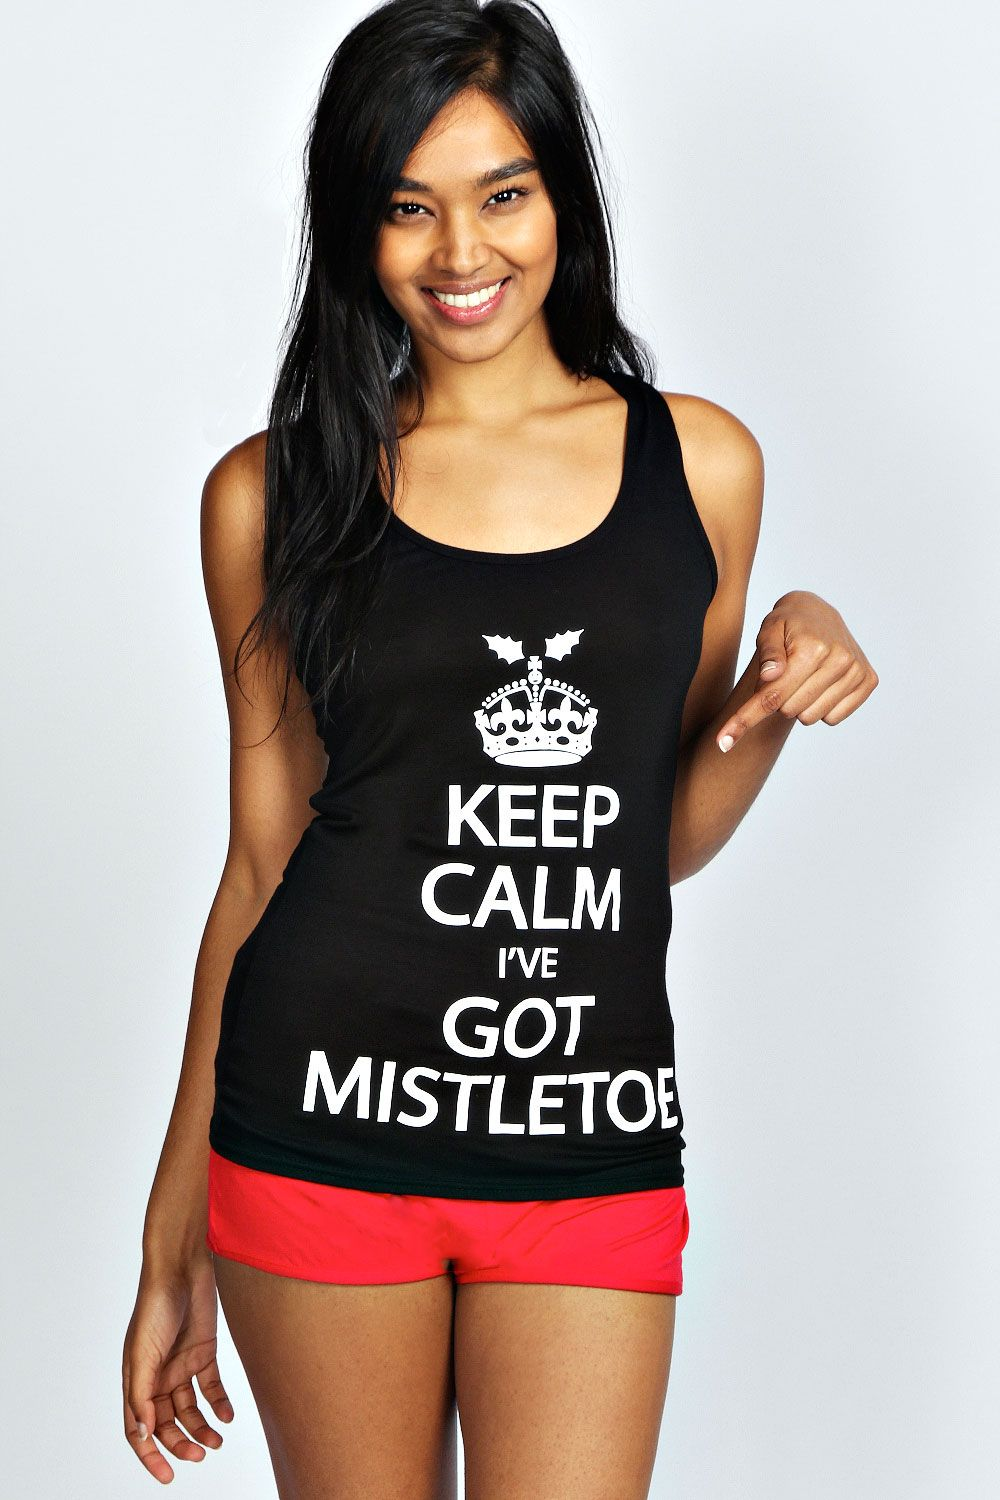 Keep Calm Mistletoe Shorts and Vest Set >> http//www